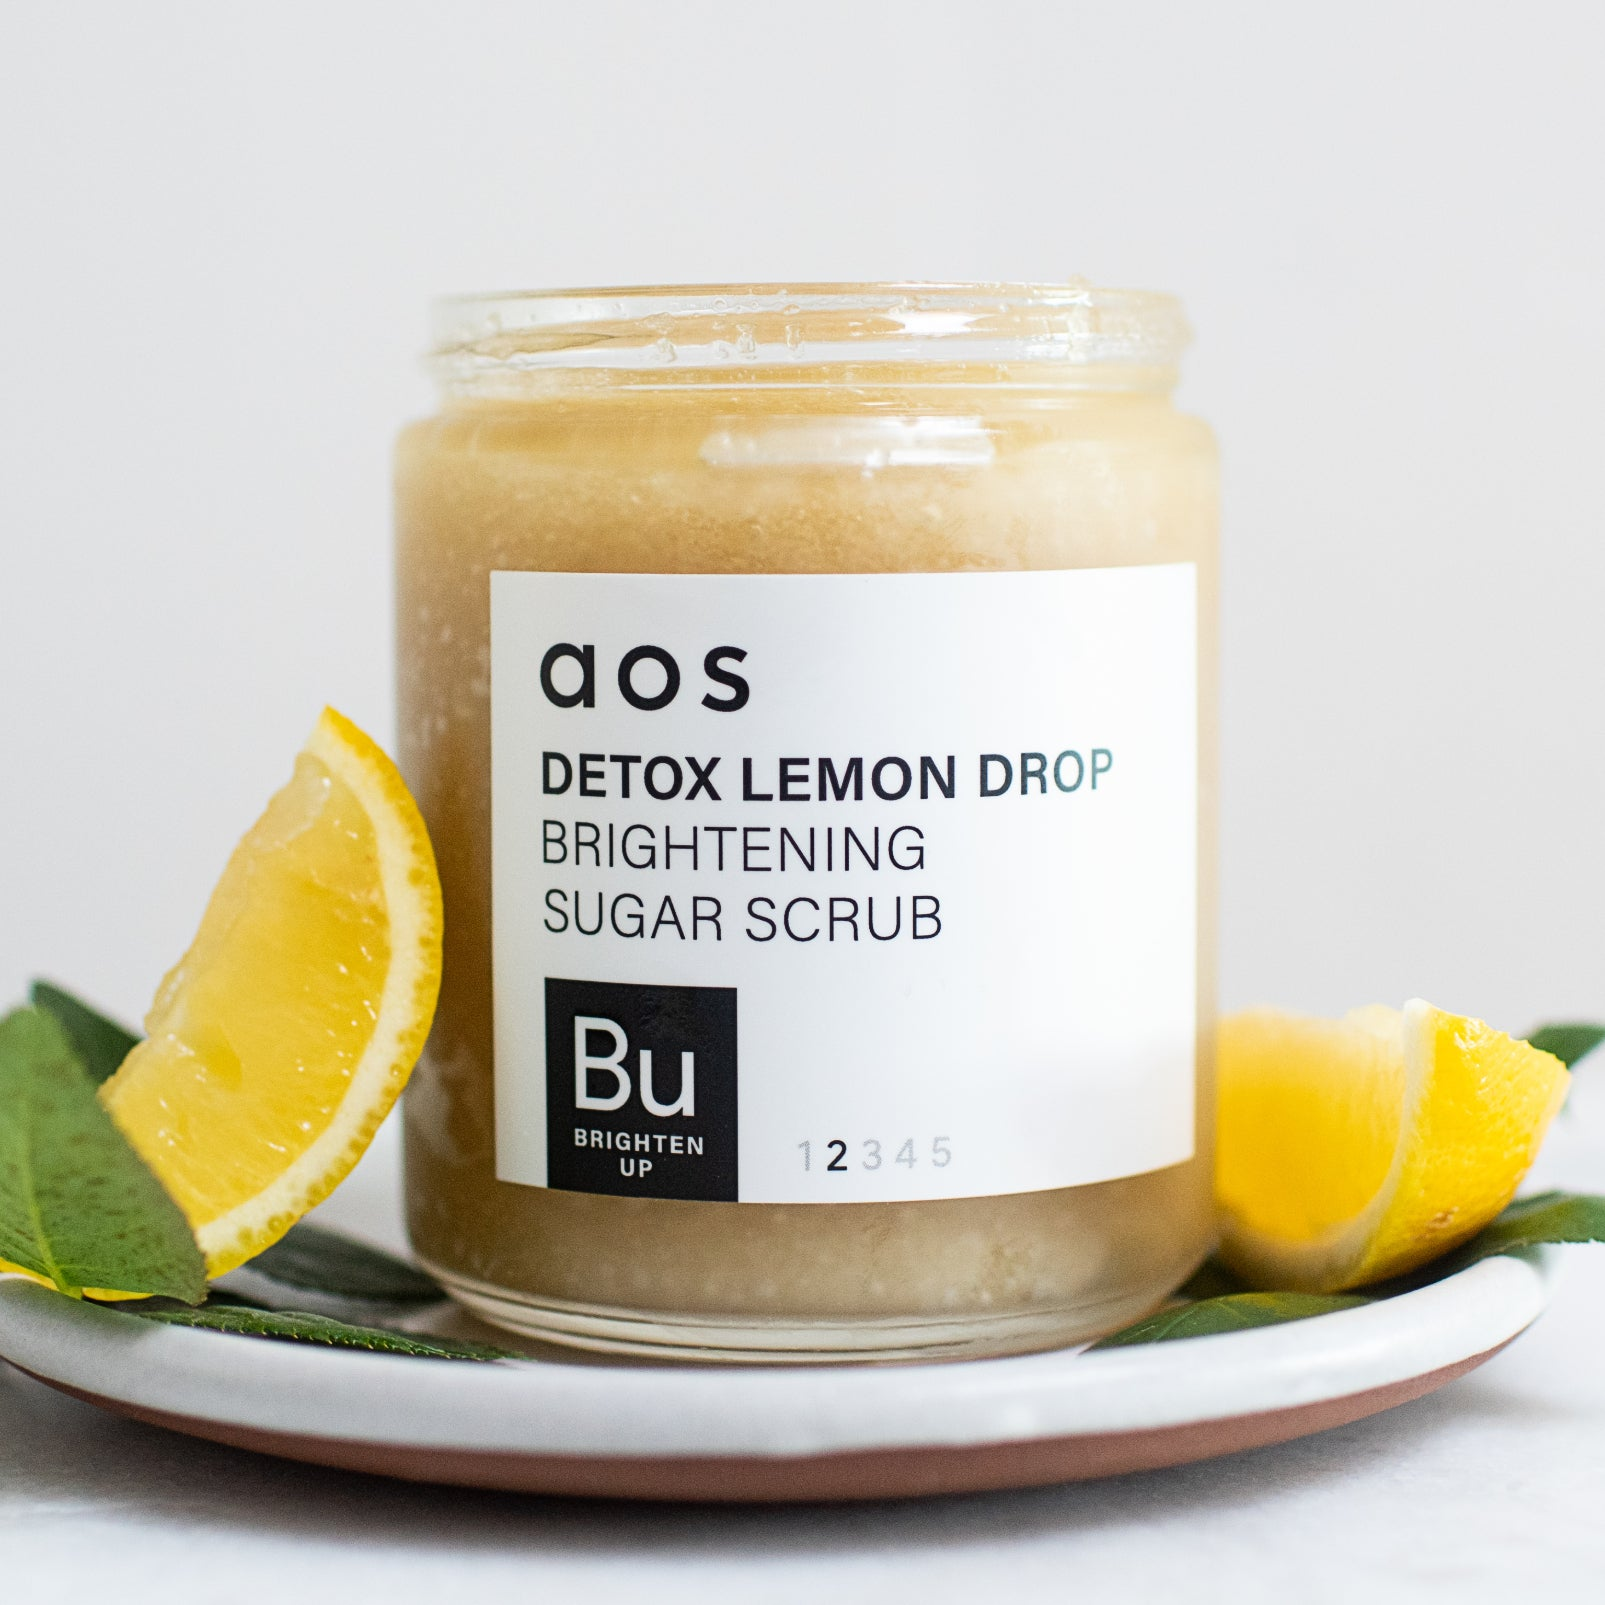 Detox Lemon Drop Brightening Sugar Scrub